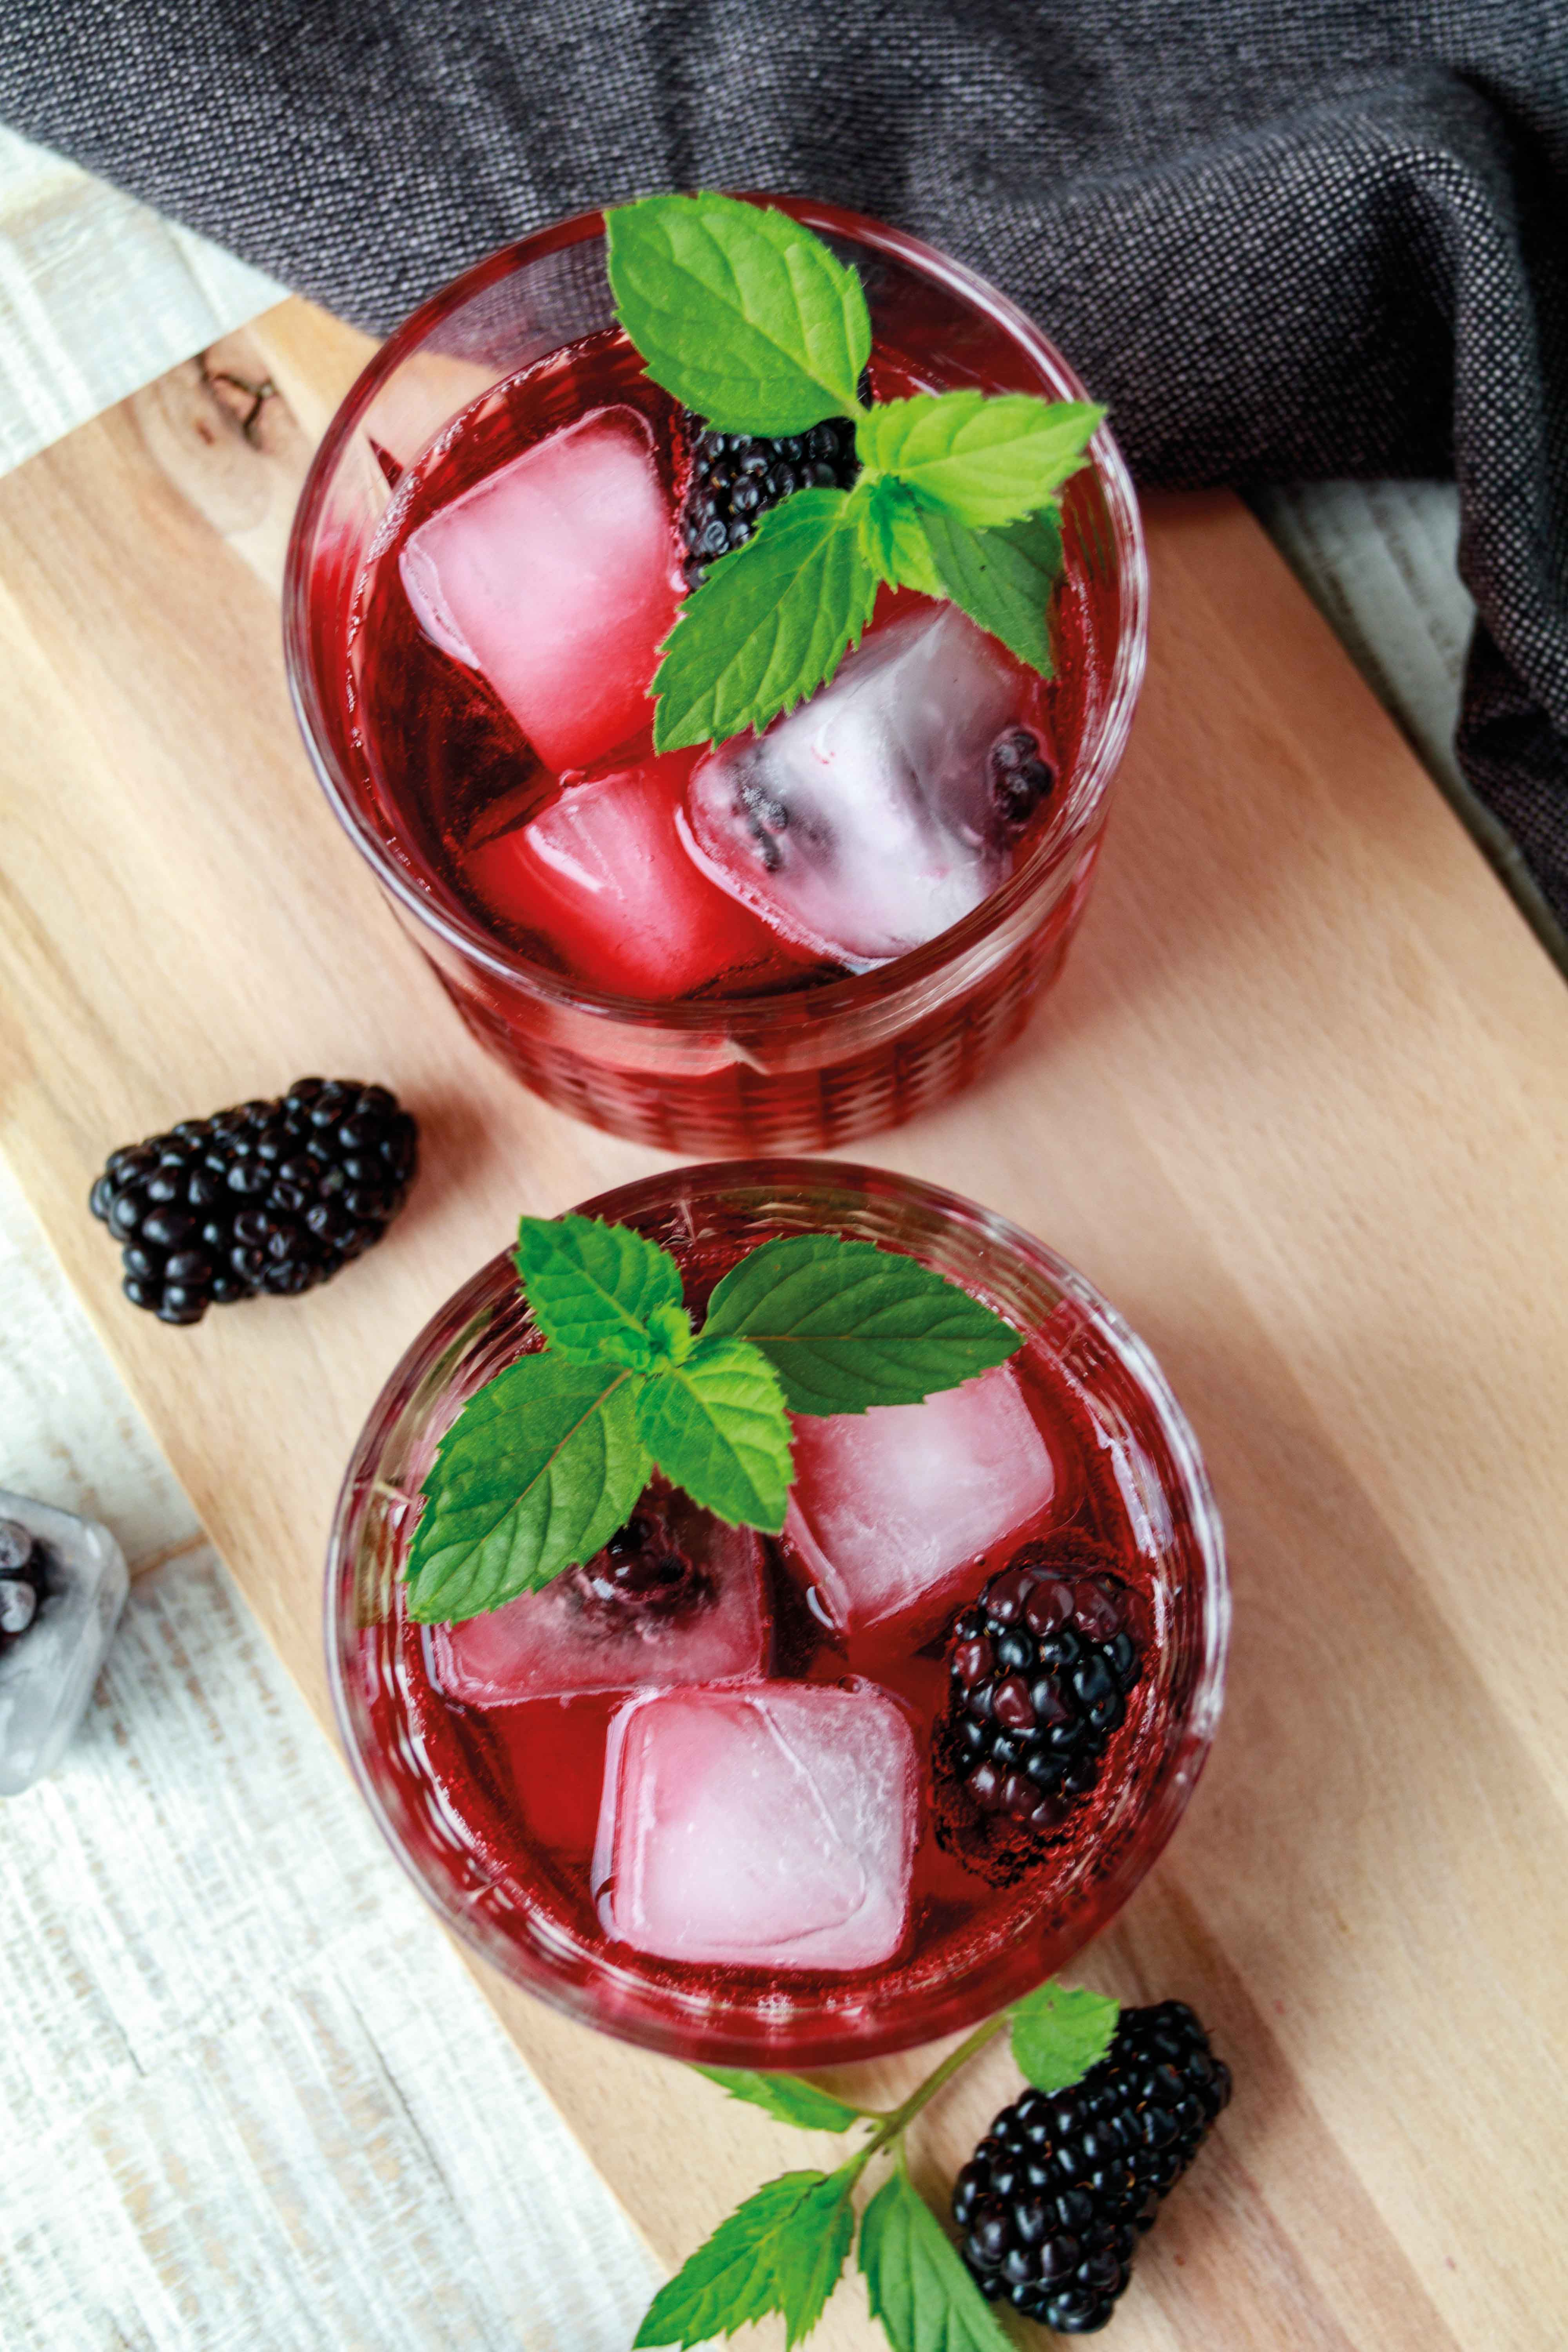 Berry Cooler mit Brombeeren // Berry Cooler with Blackberries by http://babyrockmyday.com/berry-cooler/